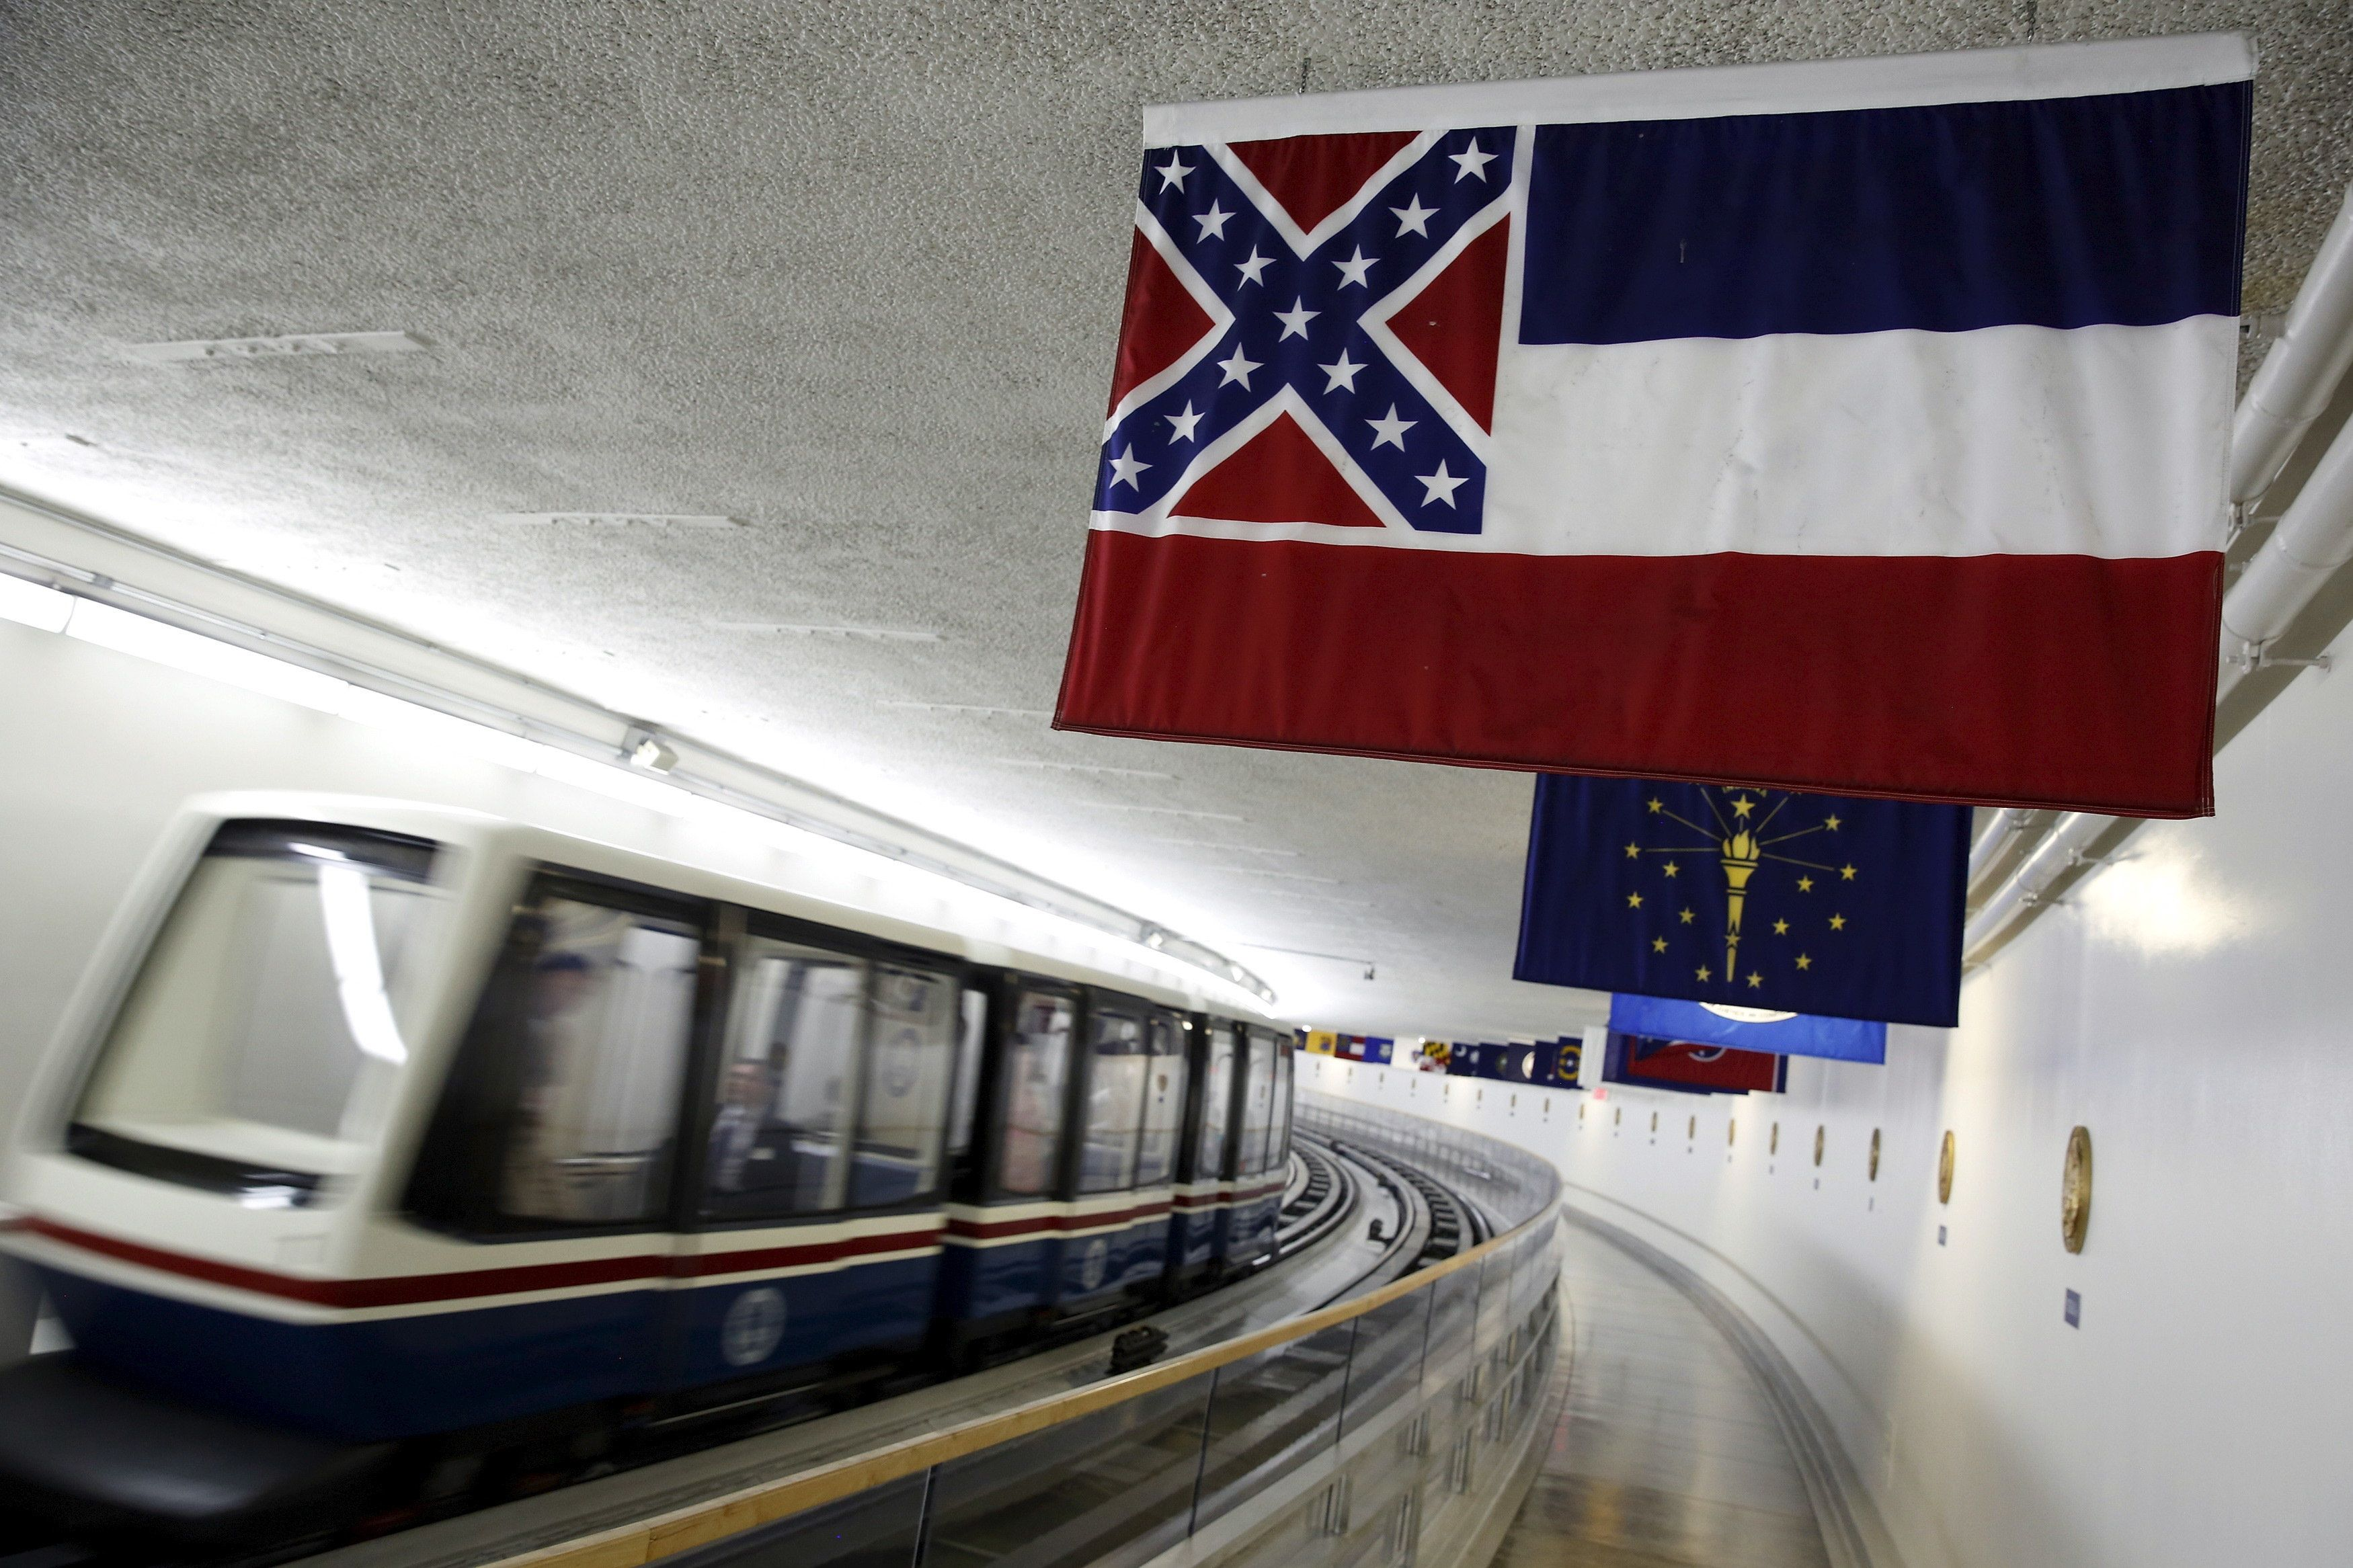 The Mississippi state flag, which incorporates the Confederate battle flag, hangs with other state flags in the subway system under the U.S. Capitol in Washington June 23, 2015. South Carolina Governor Nikki Haley on Monday called on lawmakers to take down the Confederate battle flag at that state's capitol grounds, a week after a white gunman allegedly shot dead nine black worshipers at a historic church.  REUTERS/Jonathan Ernst